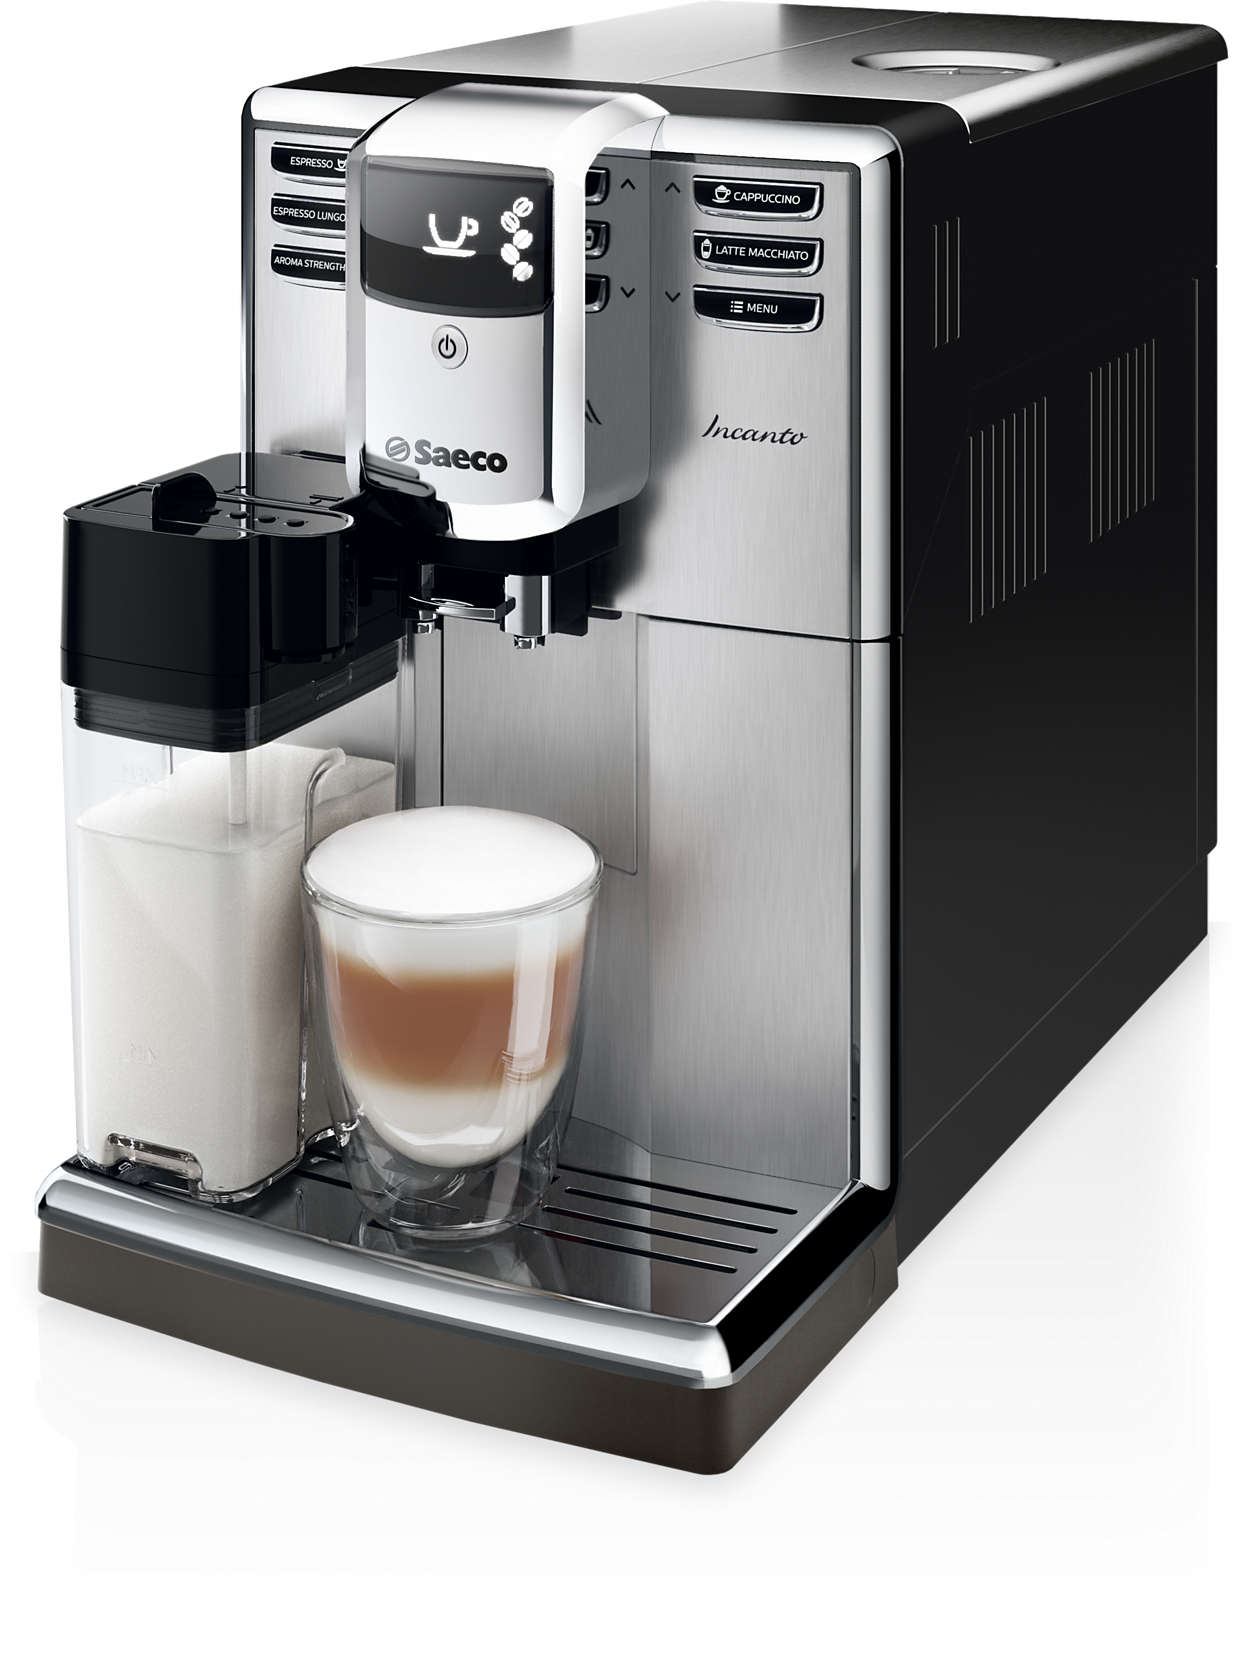 incanto super automatic espresso machine hd8917 47 saeco. Black Bedroom Furniture Sets. Home Design Ideas